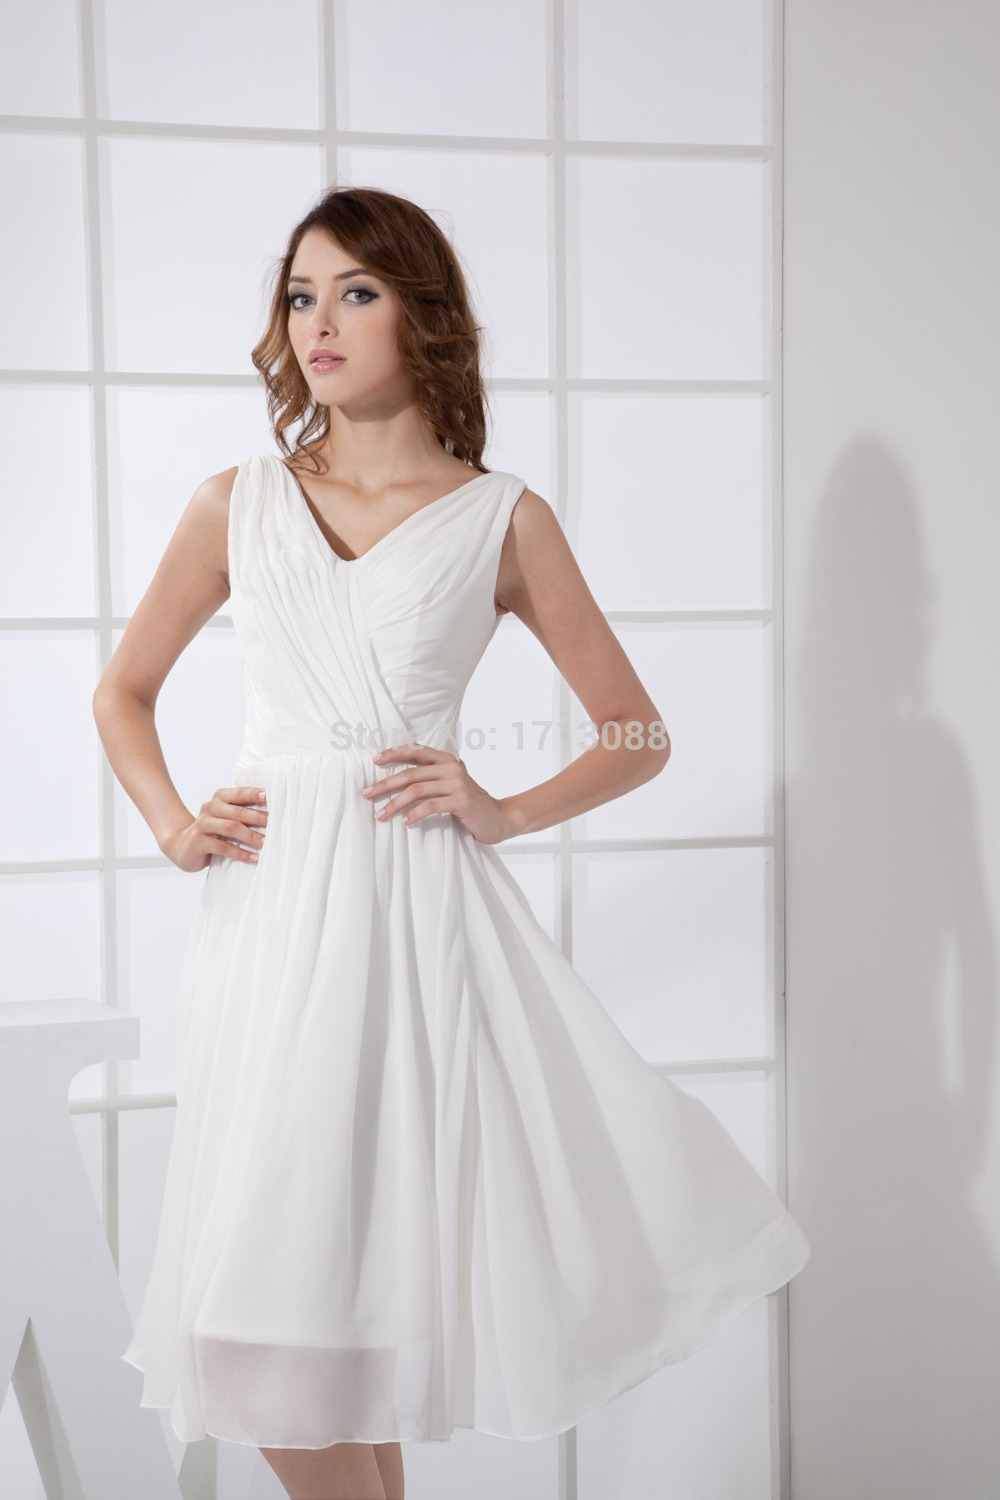 white bridesmaid dresses with V Neck Chiffon,Sleeveless mid length  bridesmaid dresses-in Bridesmaid Dresses from Weddings & Events on  Aliexpress.com | ...